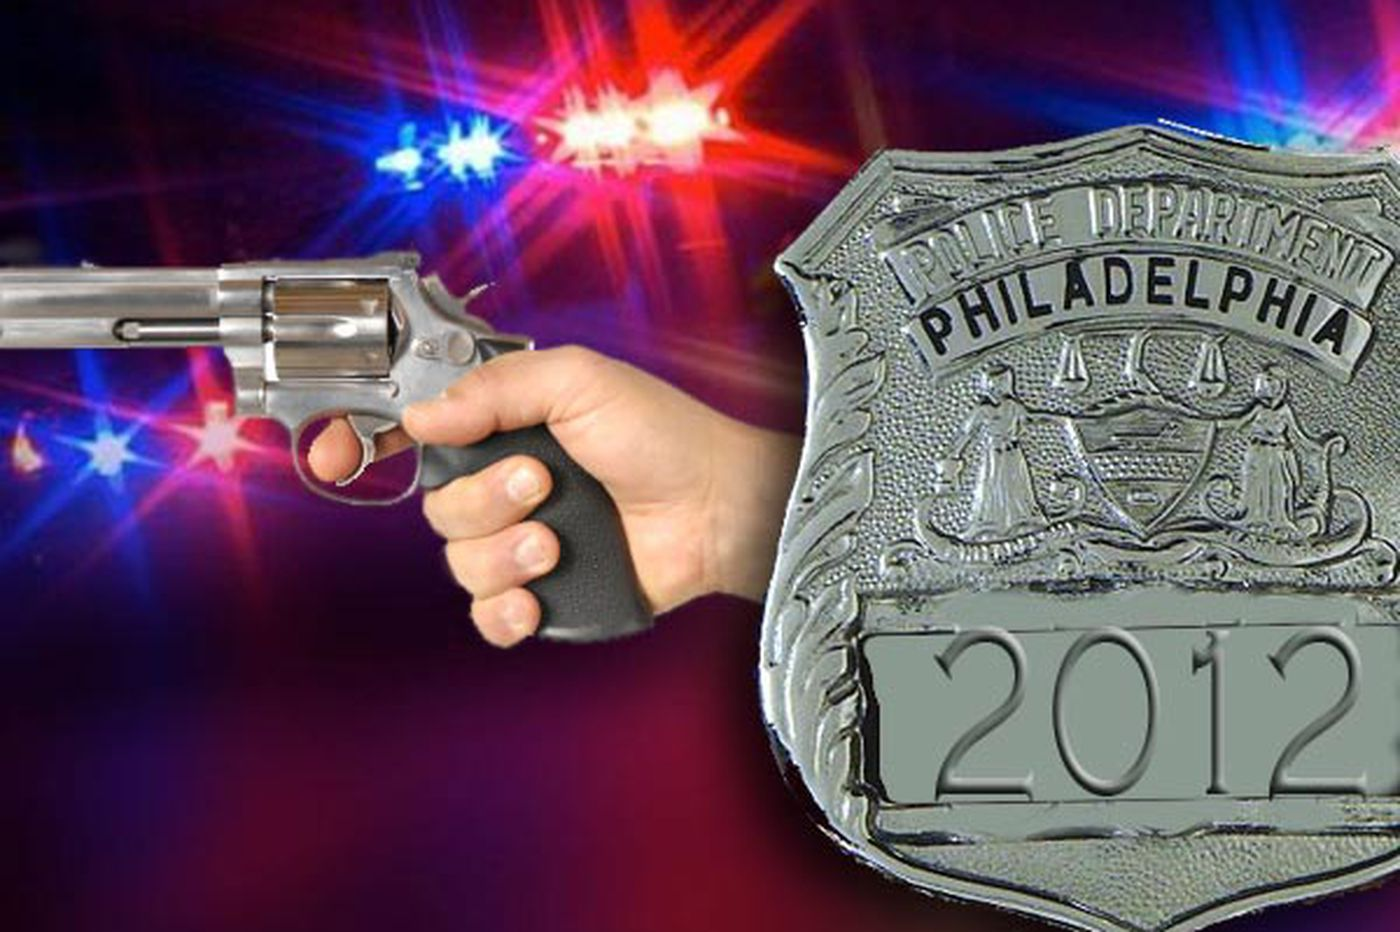 Exclusive: Feds to review deadly force by Philly cops